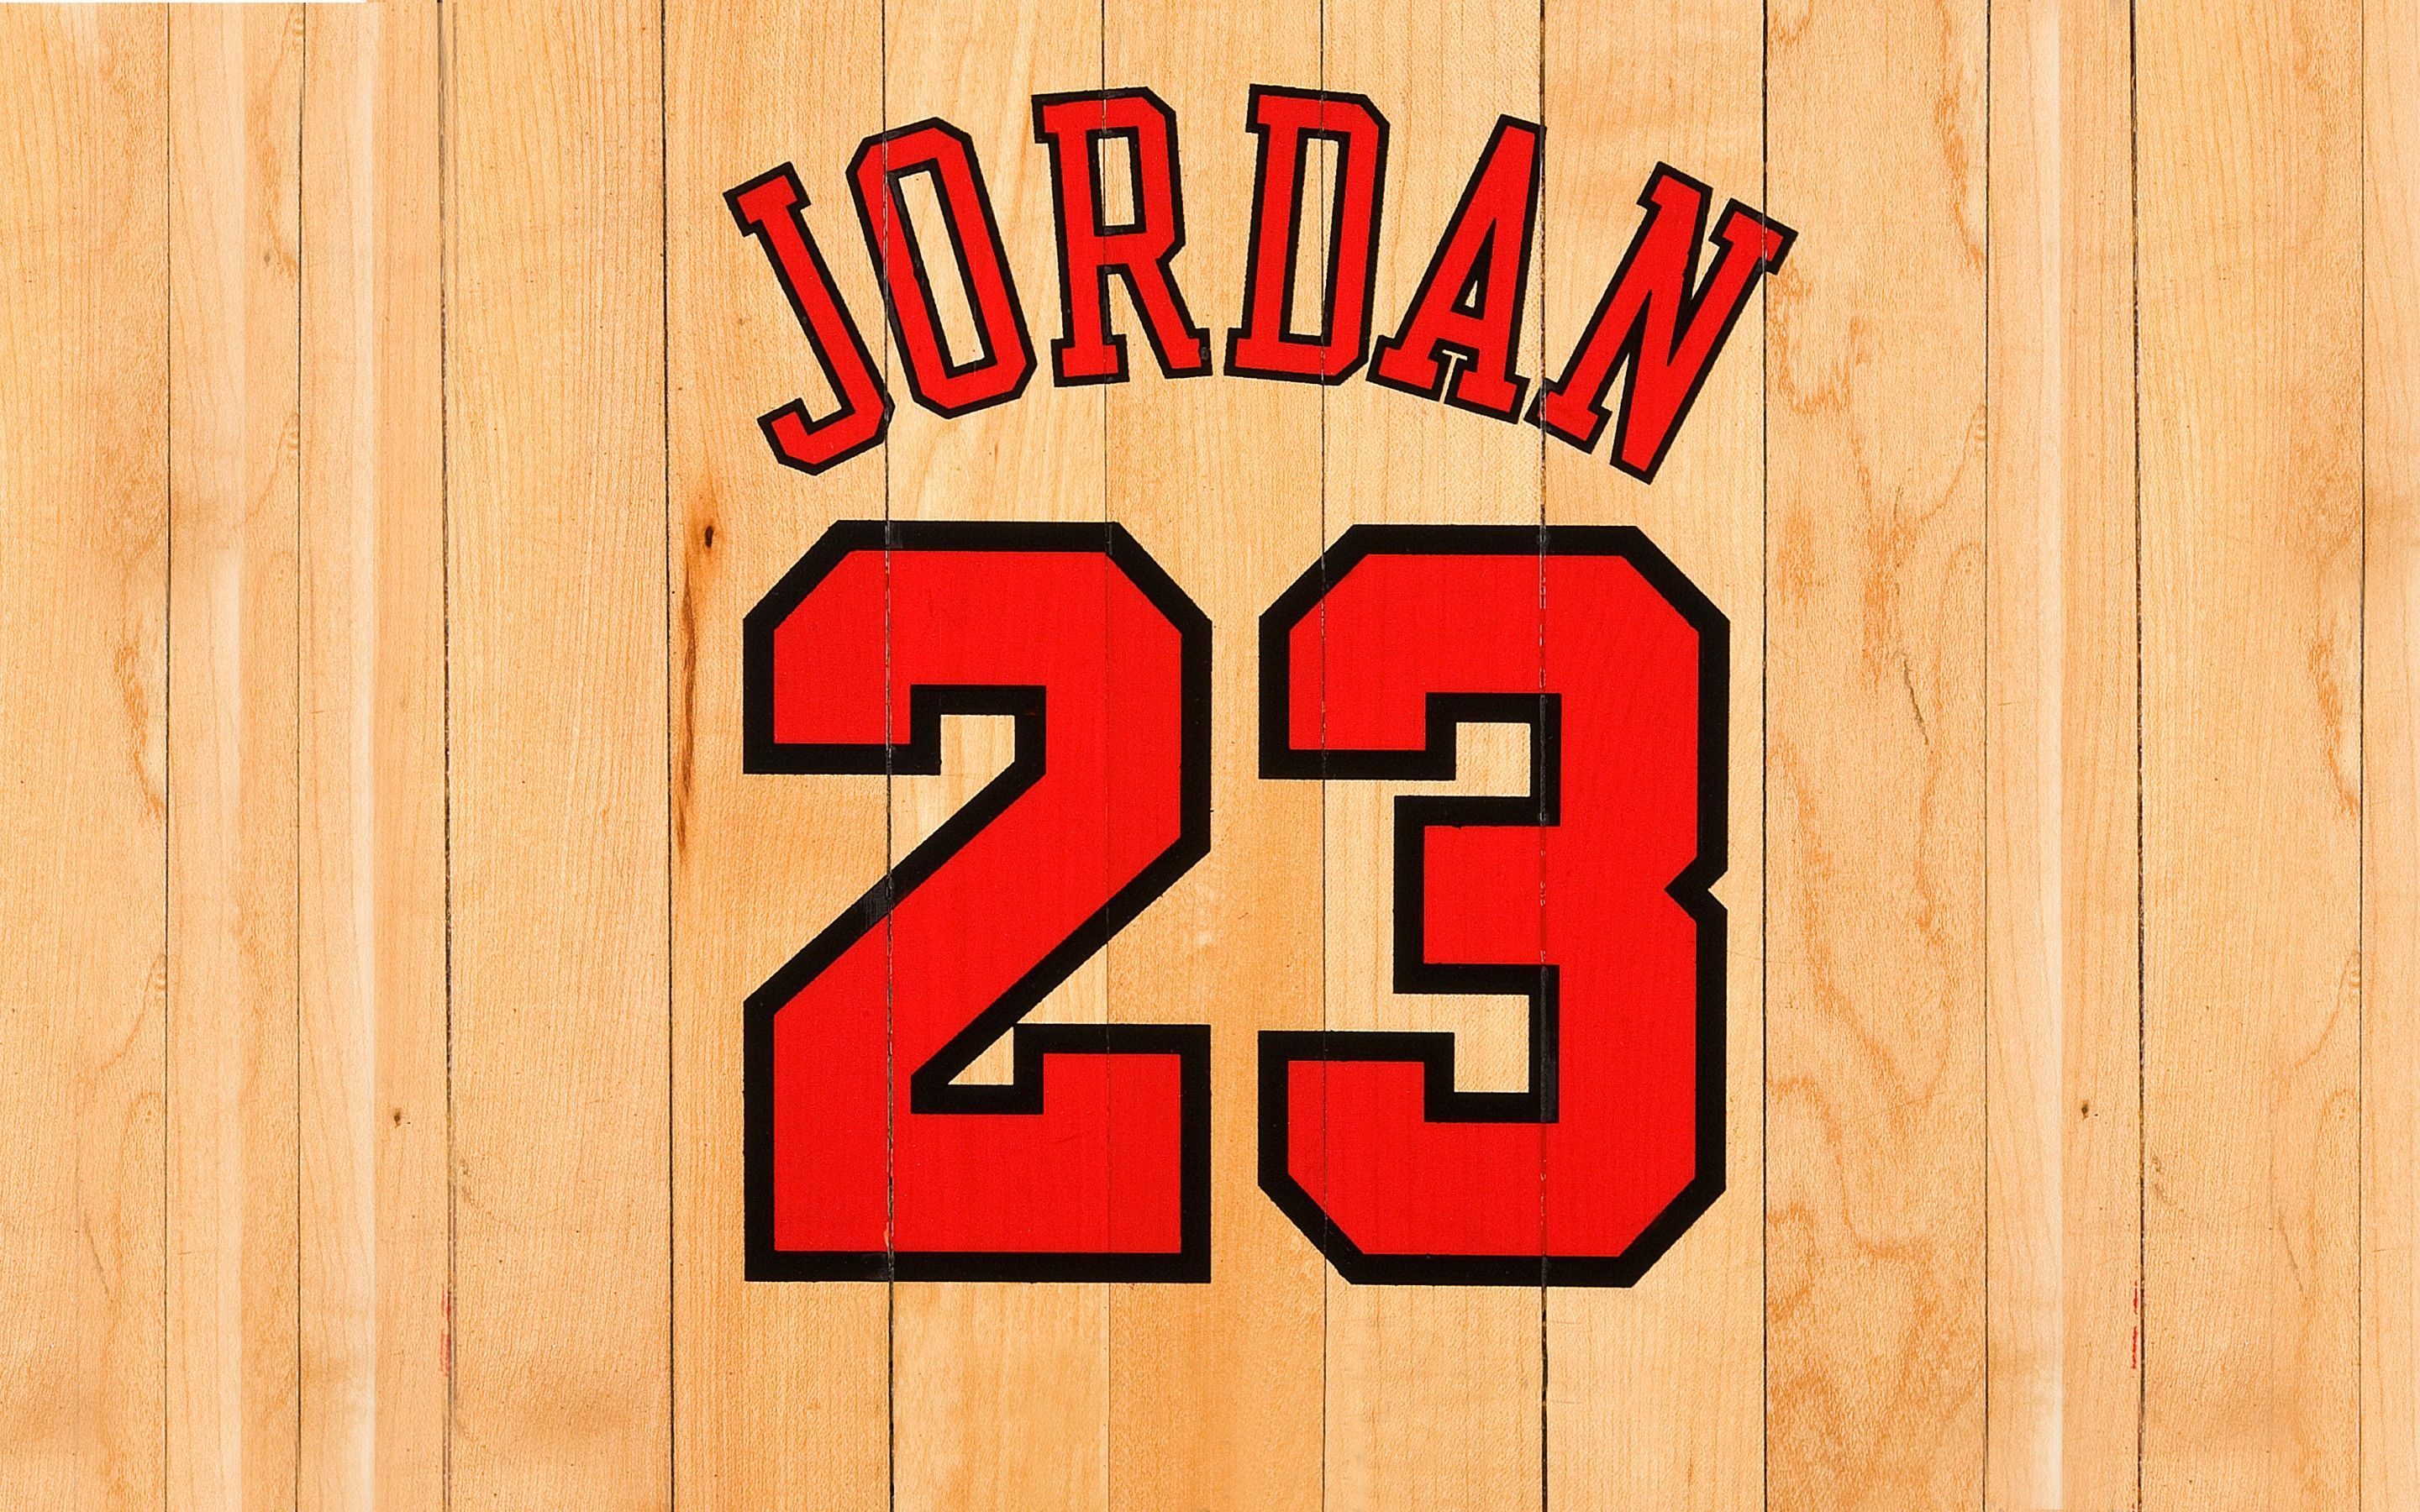 2880x1800 Michael Jordan Wallpapers - Full HD wallpaper search | Sports ...